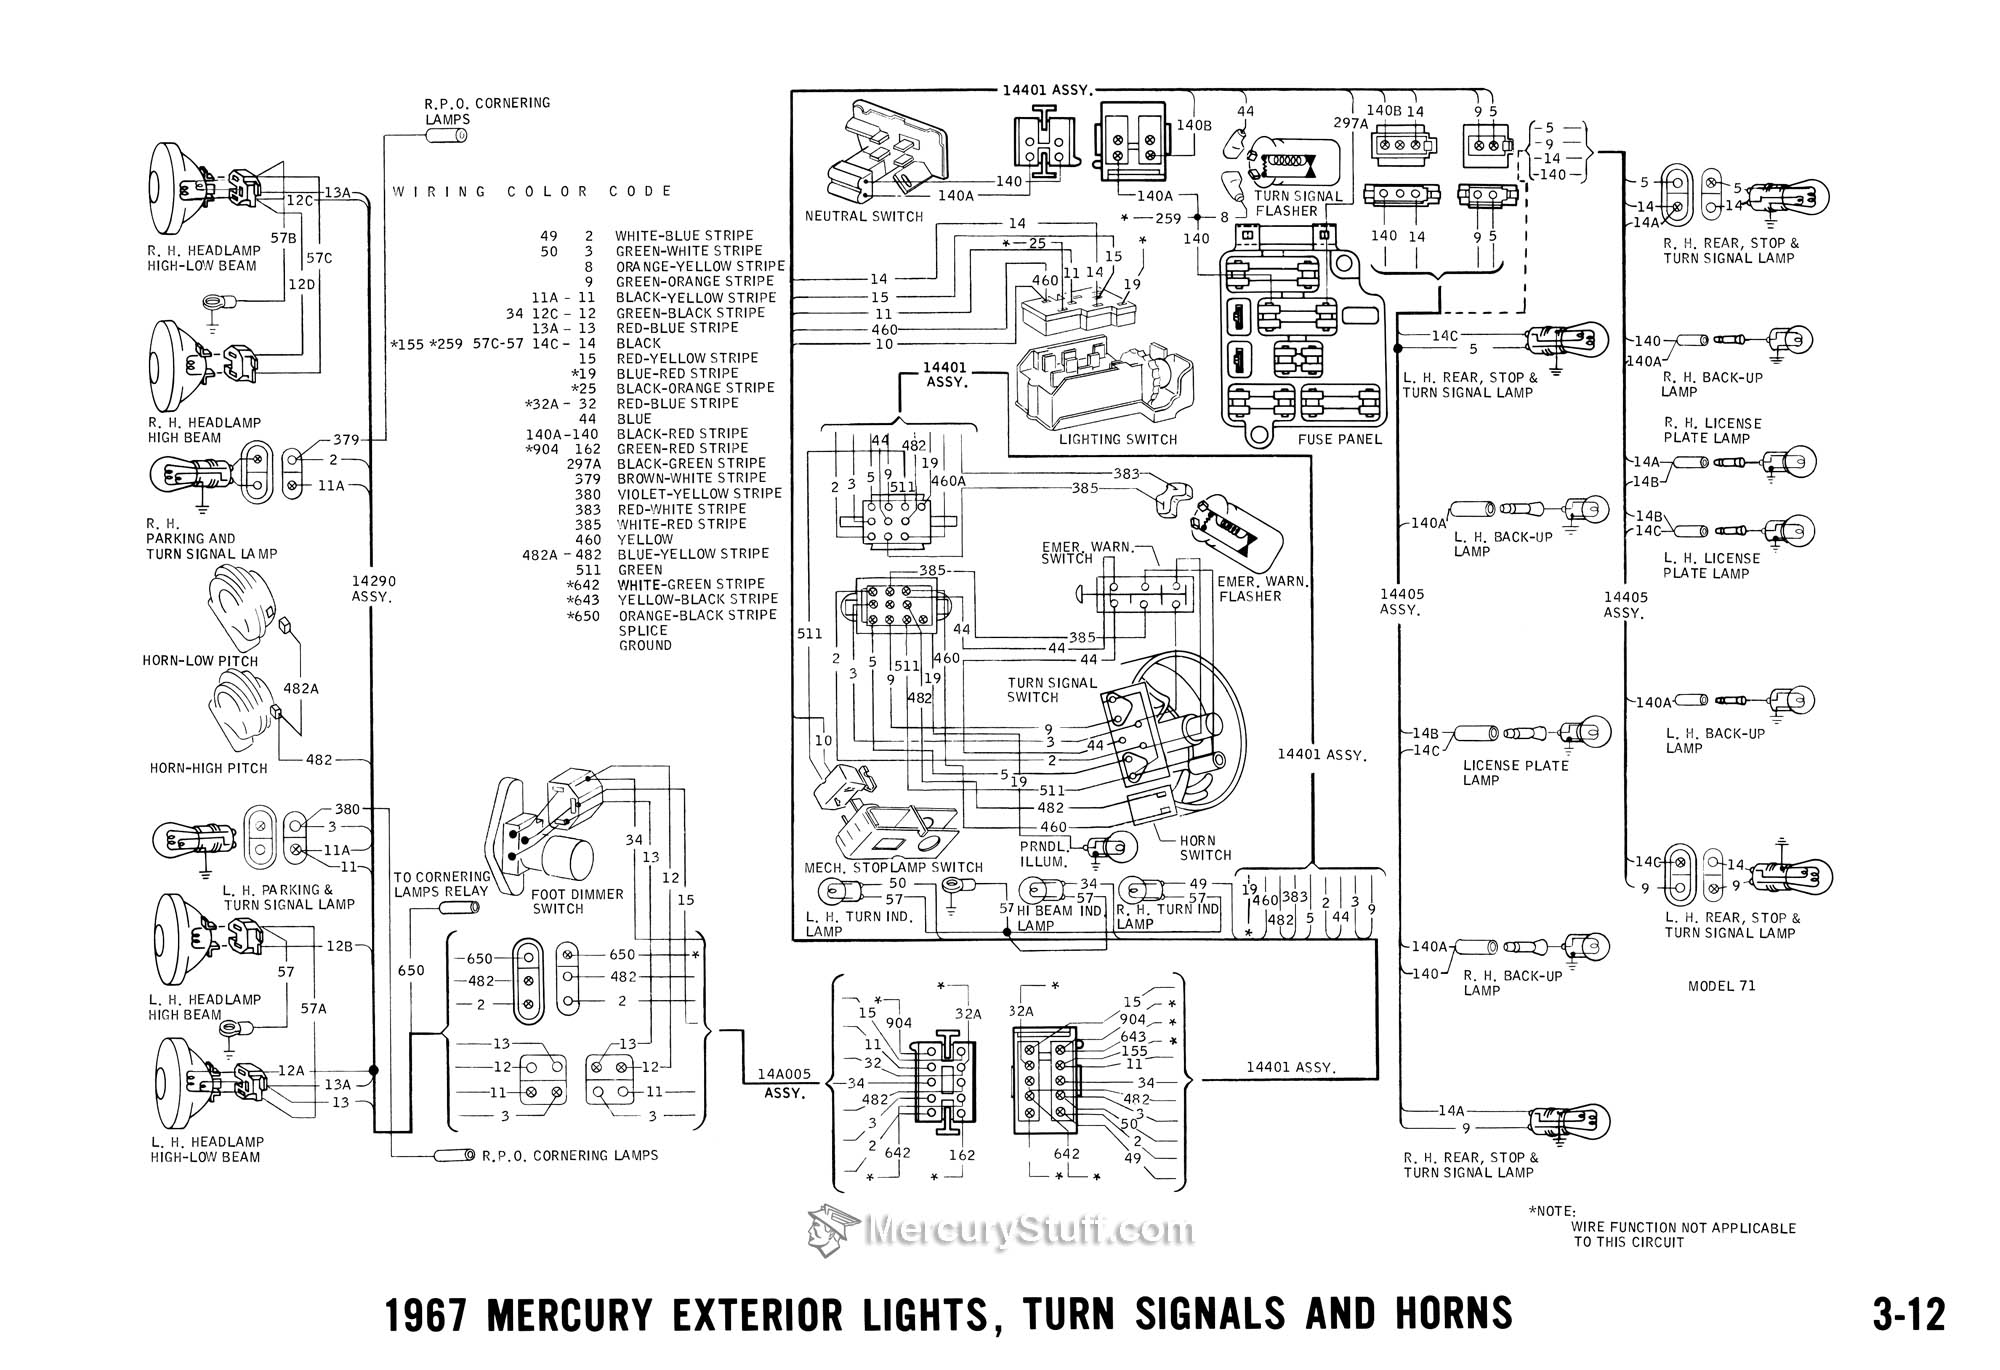 1966 mercury wiring diagram 1966 wiring diagrams online cornering lights 1966 mercury mercury forum mercury